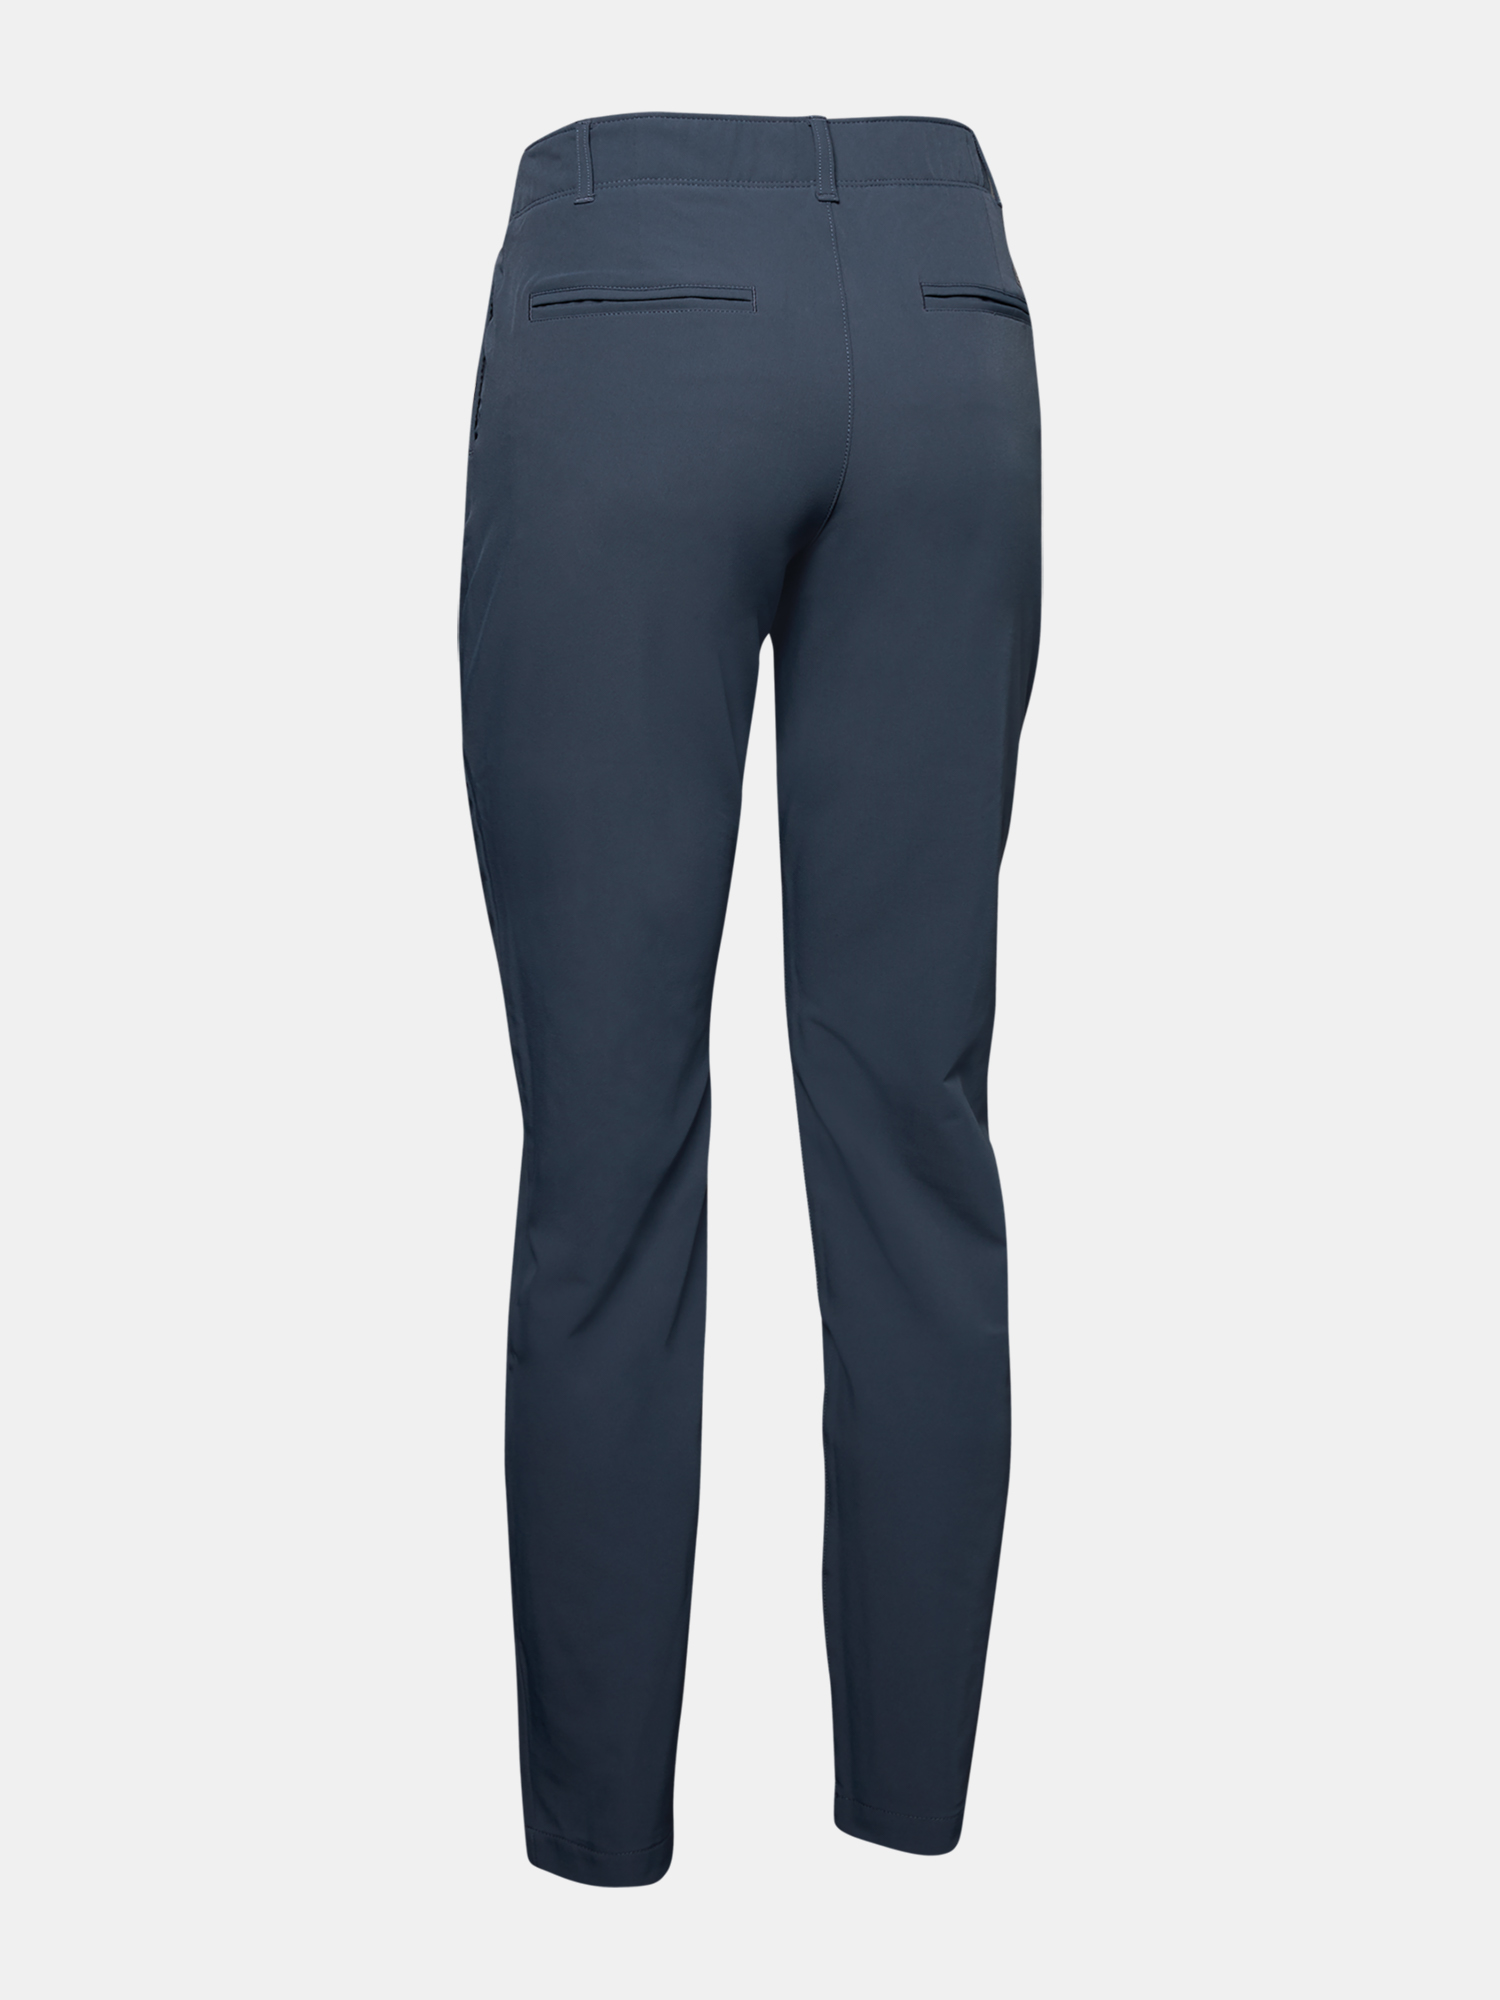 Kalhoty Under Armour Links Pant-GRY (4)